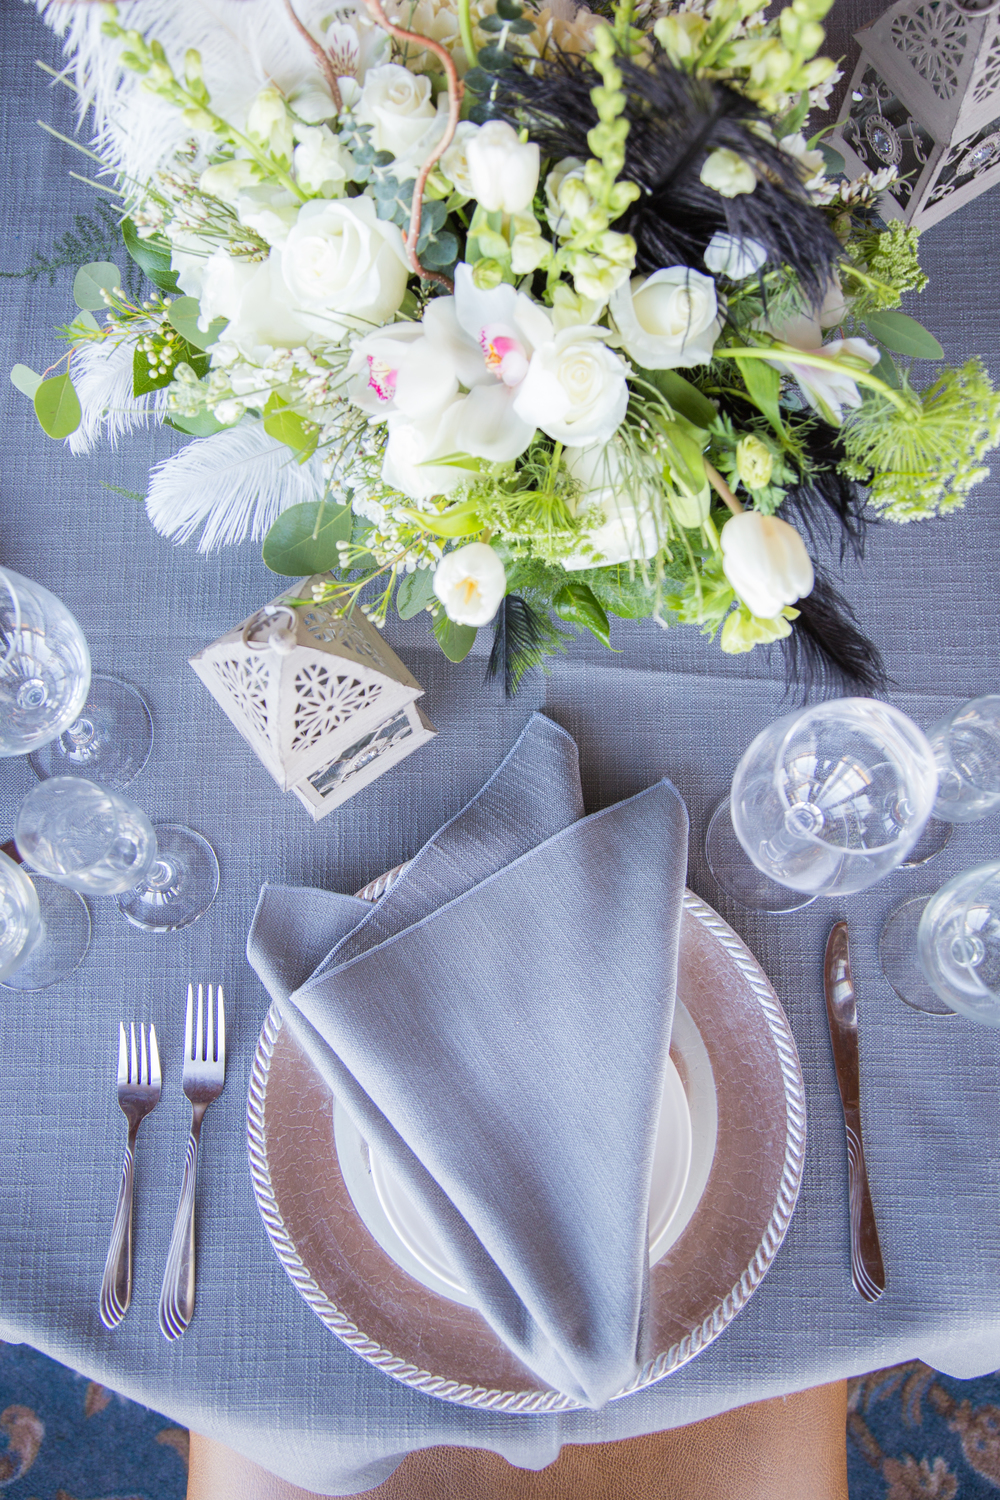 A gray overlay & grey napkins keep with the theme.